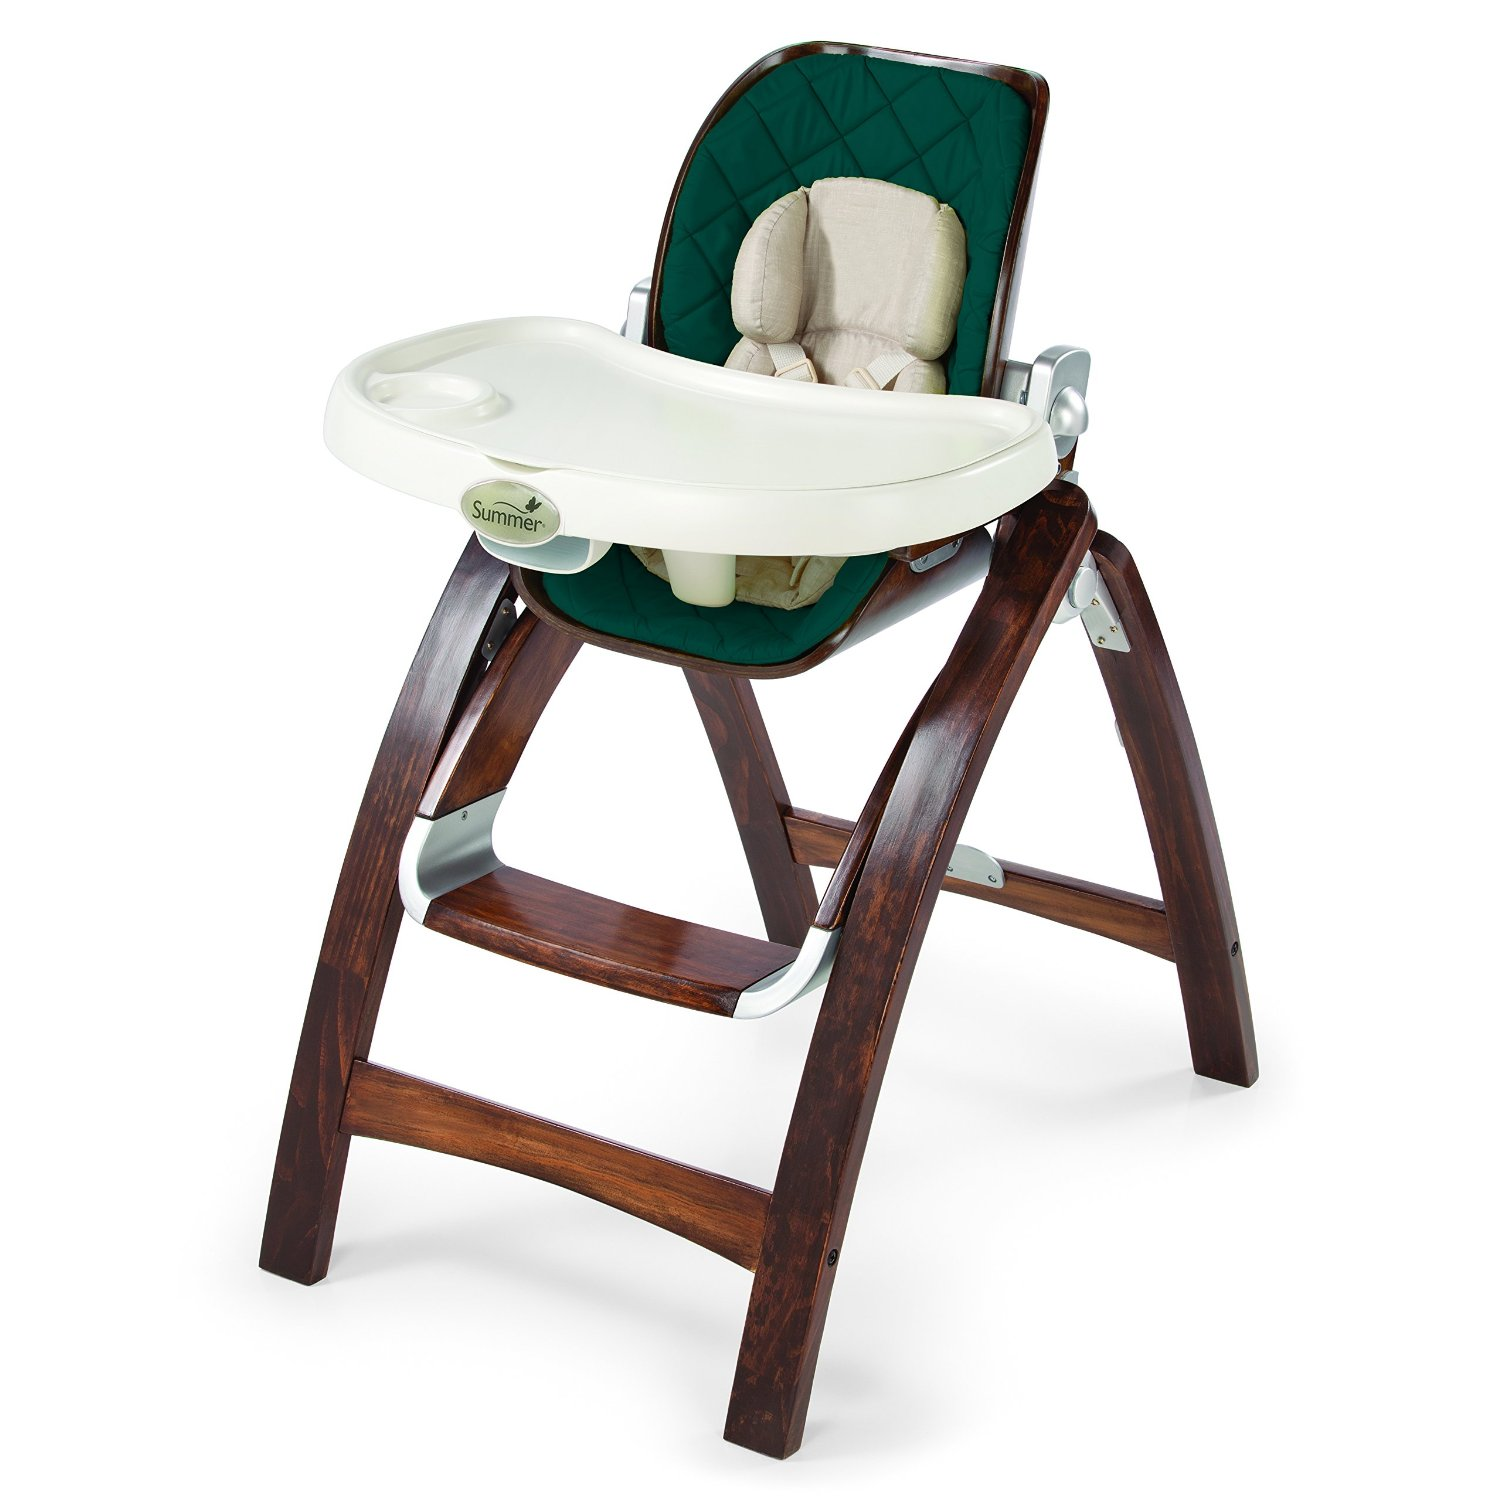 Wooden High Chairs For Babies Keekaroo Height Right High Chair With Tray Espresso